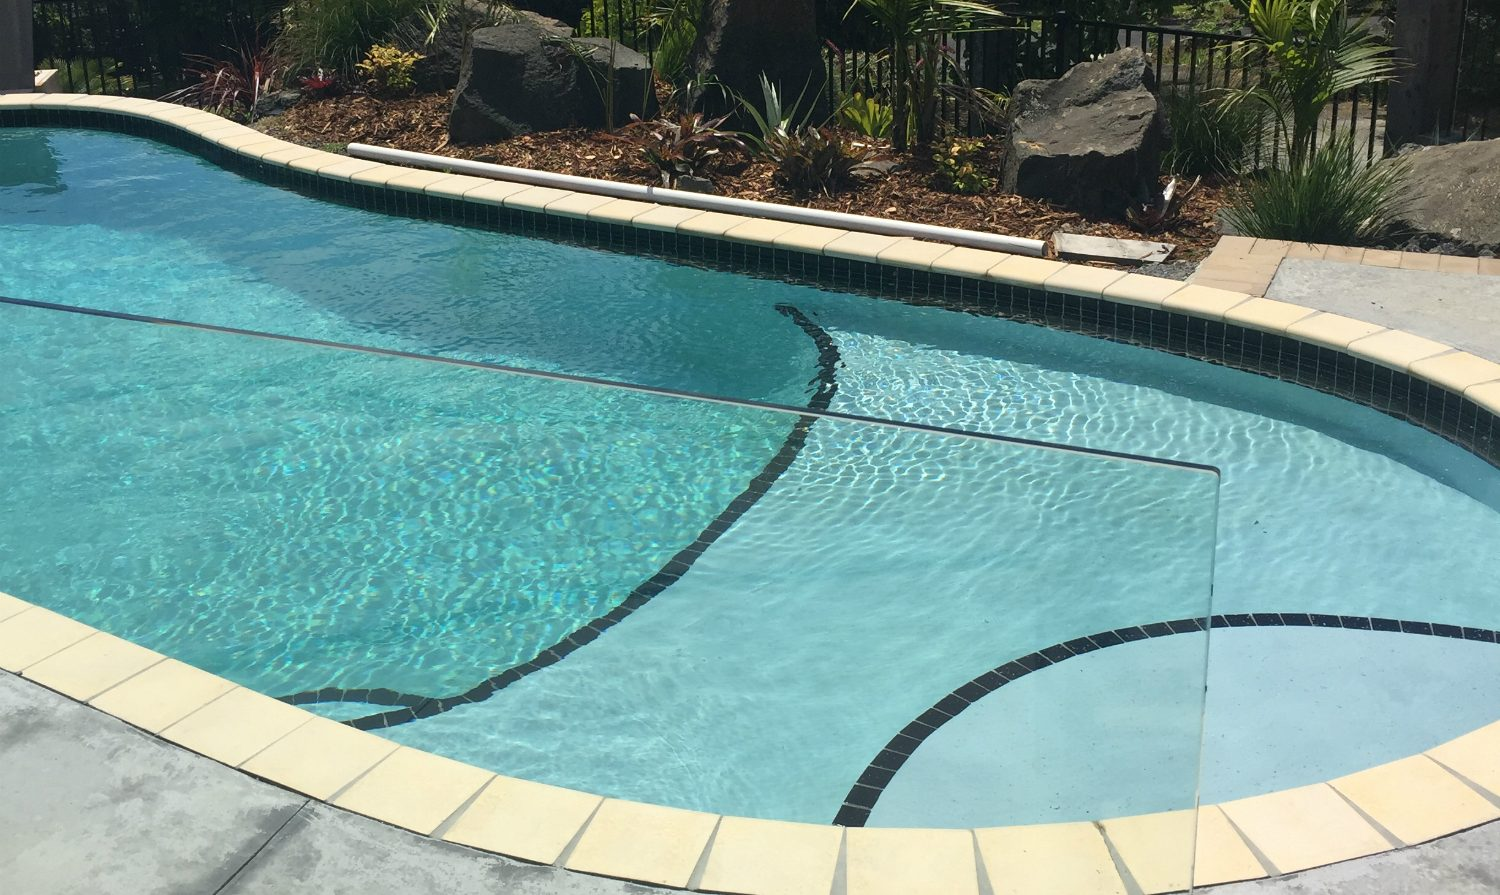 Concrete pool systems specialists in concrete swimming for Concrete pool